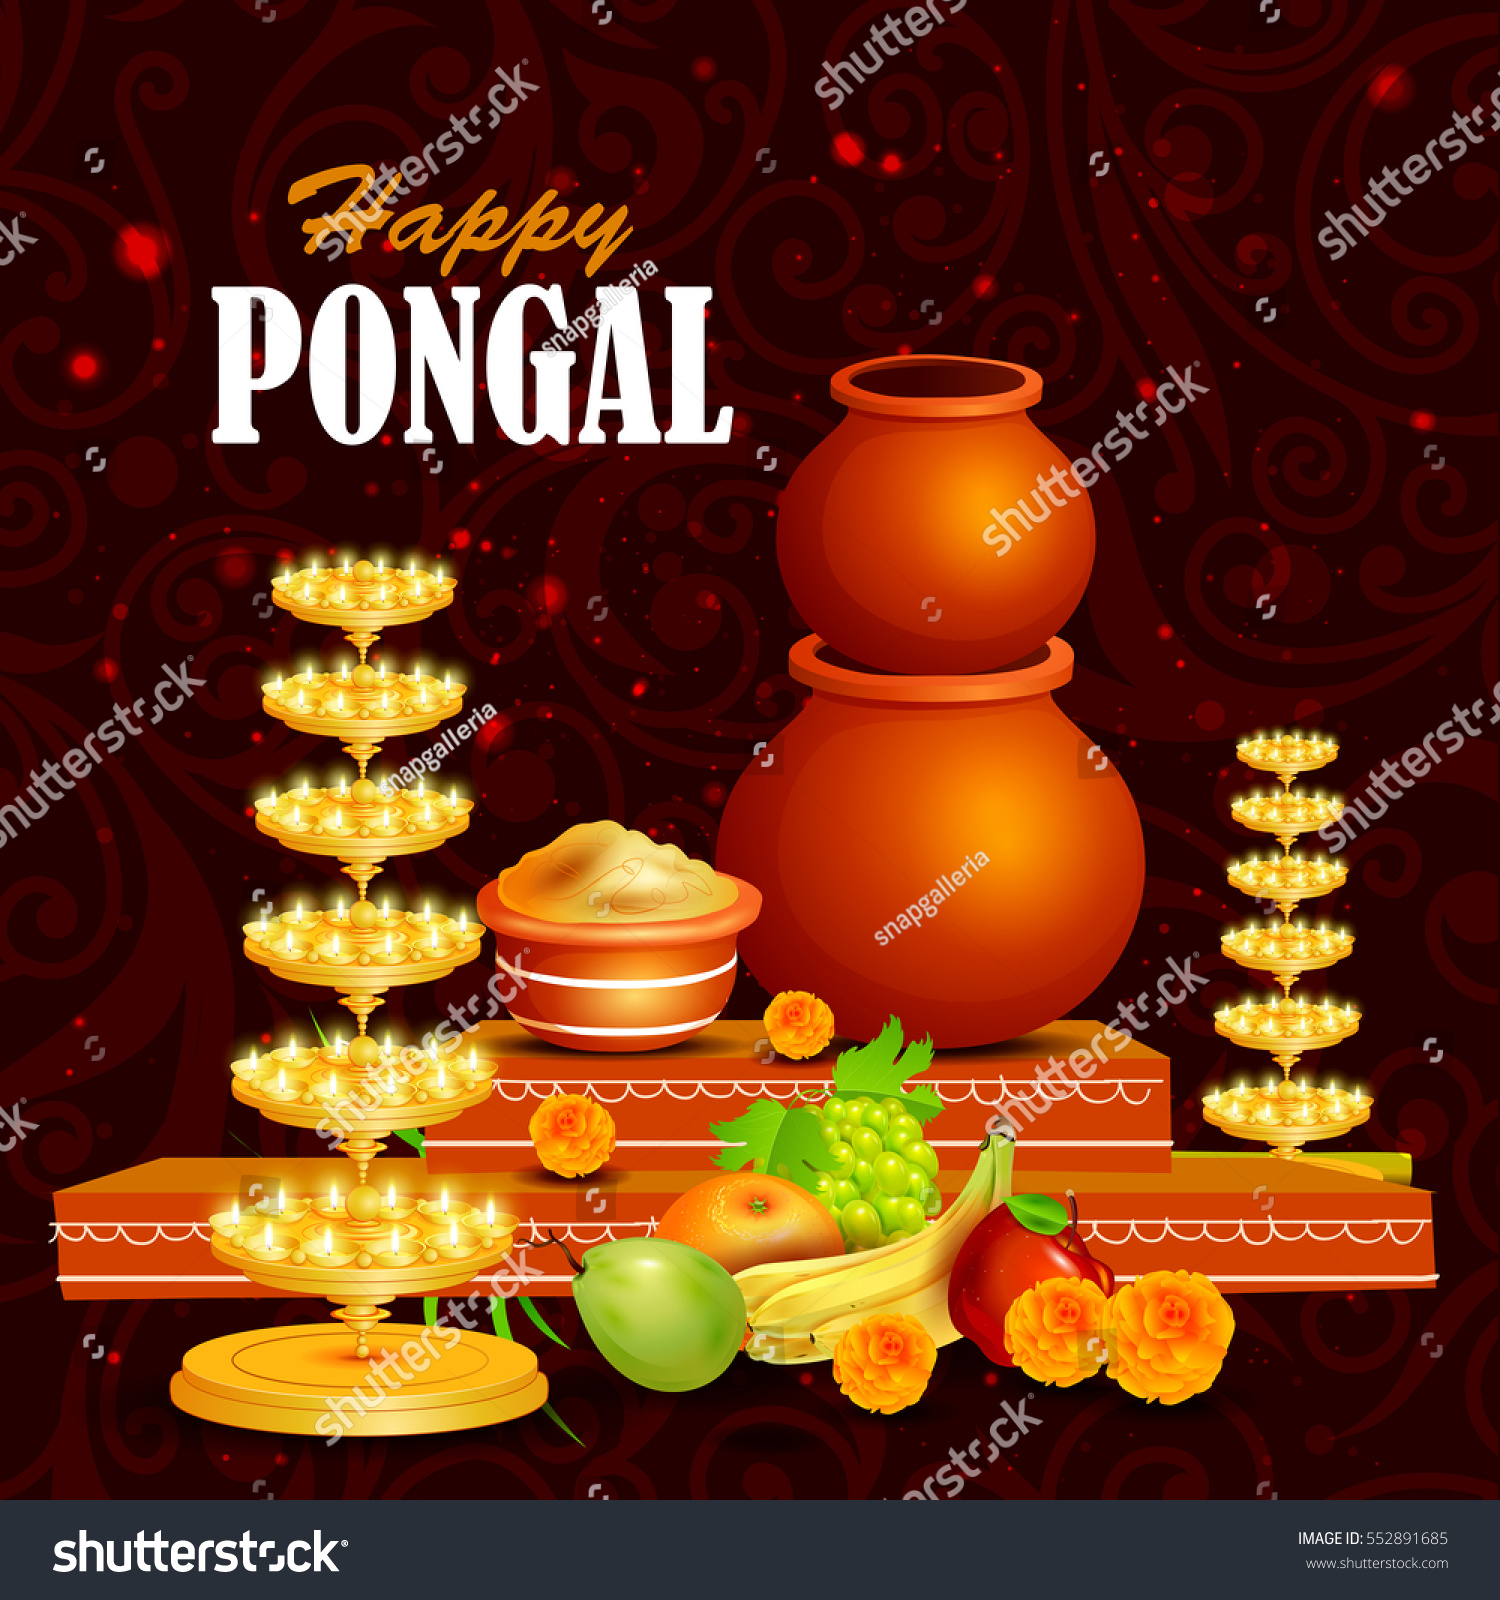 easy to edit vector illustration of happy pongal festival of tamil nadu india background 552891685